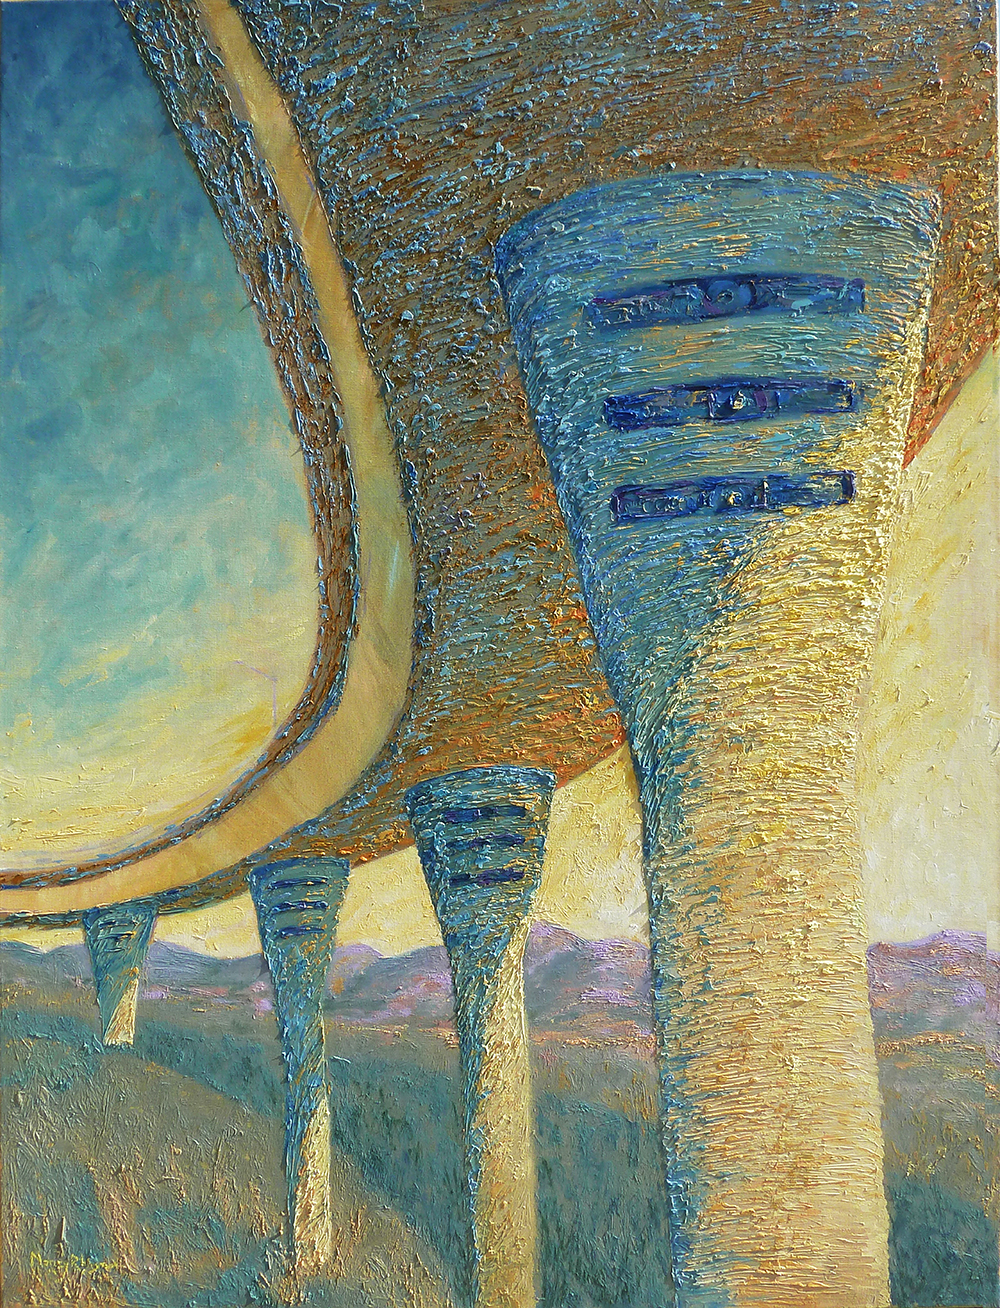 Pillars of Light © Nancy R Wise